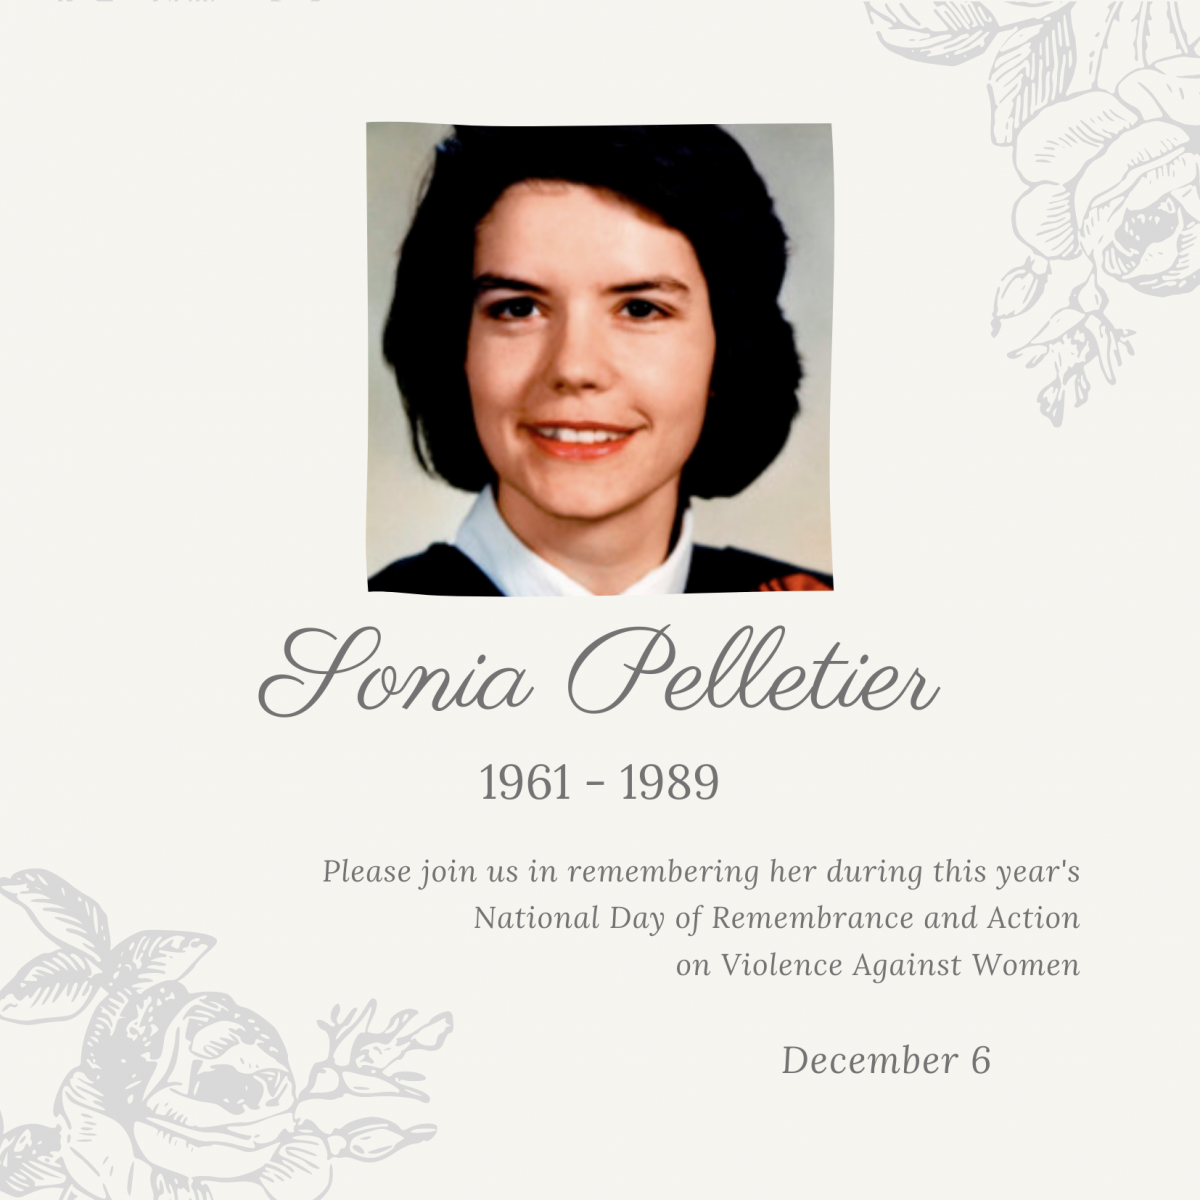 Sonia Pelletier. 1961 to 1989.